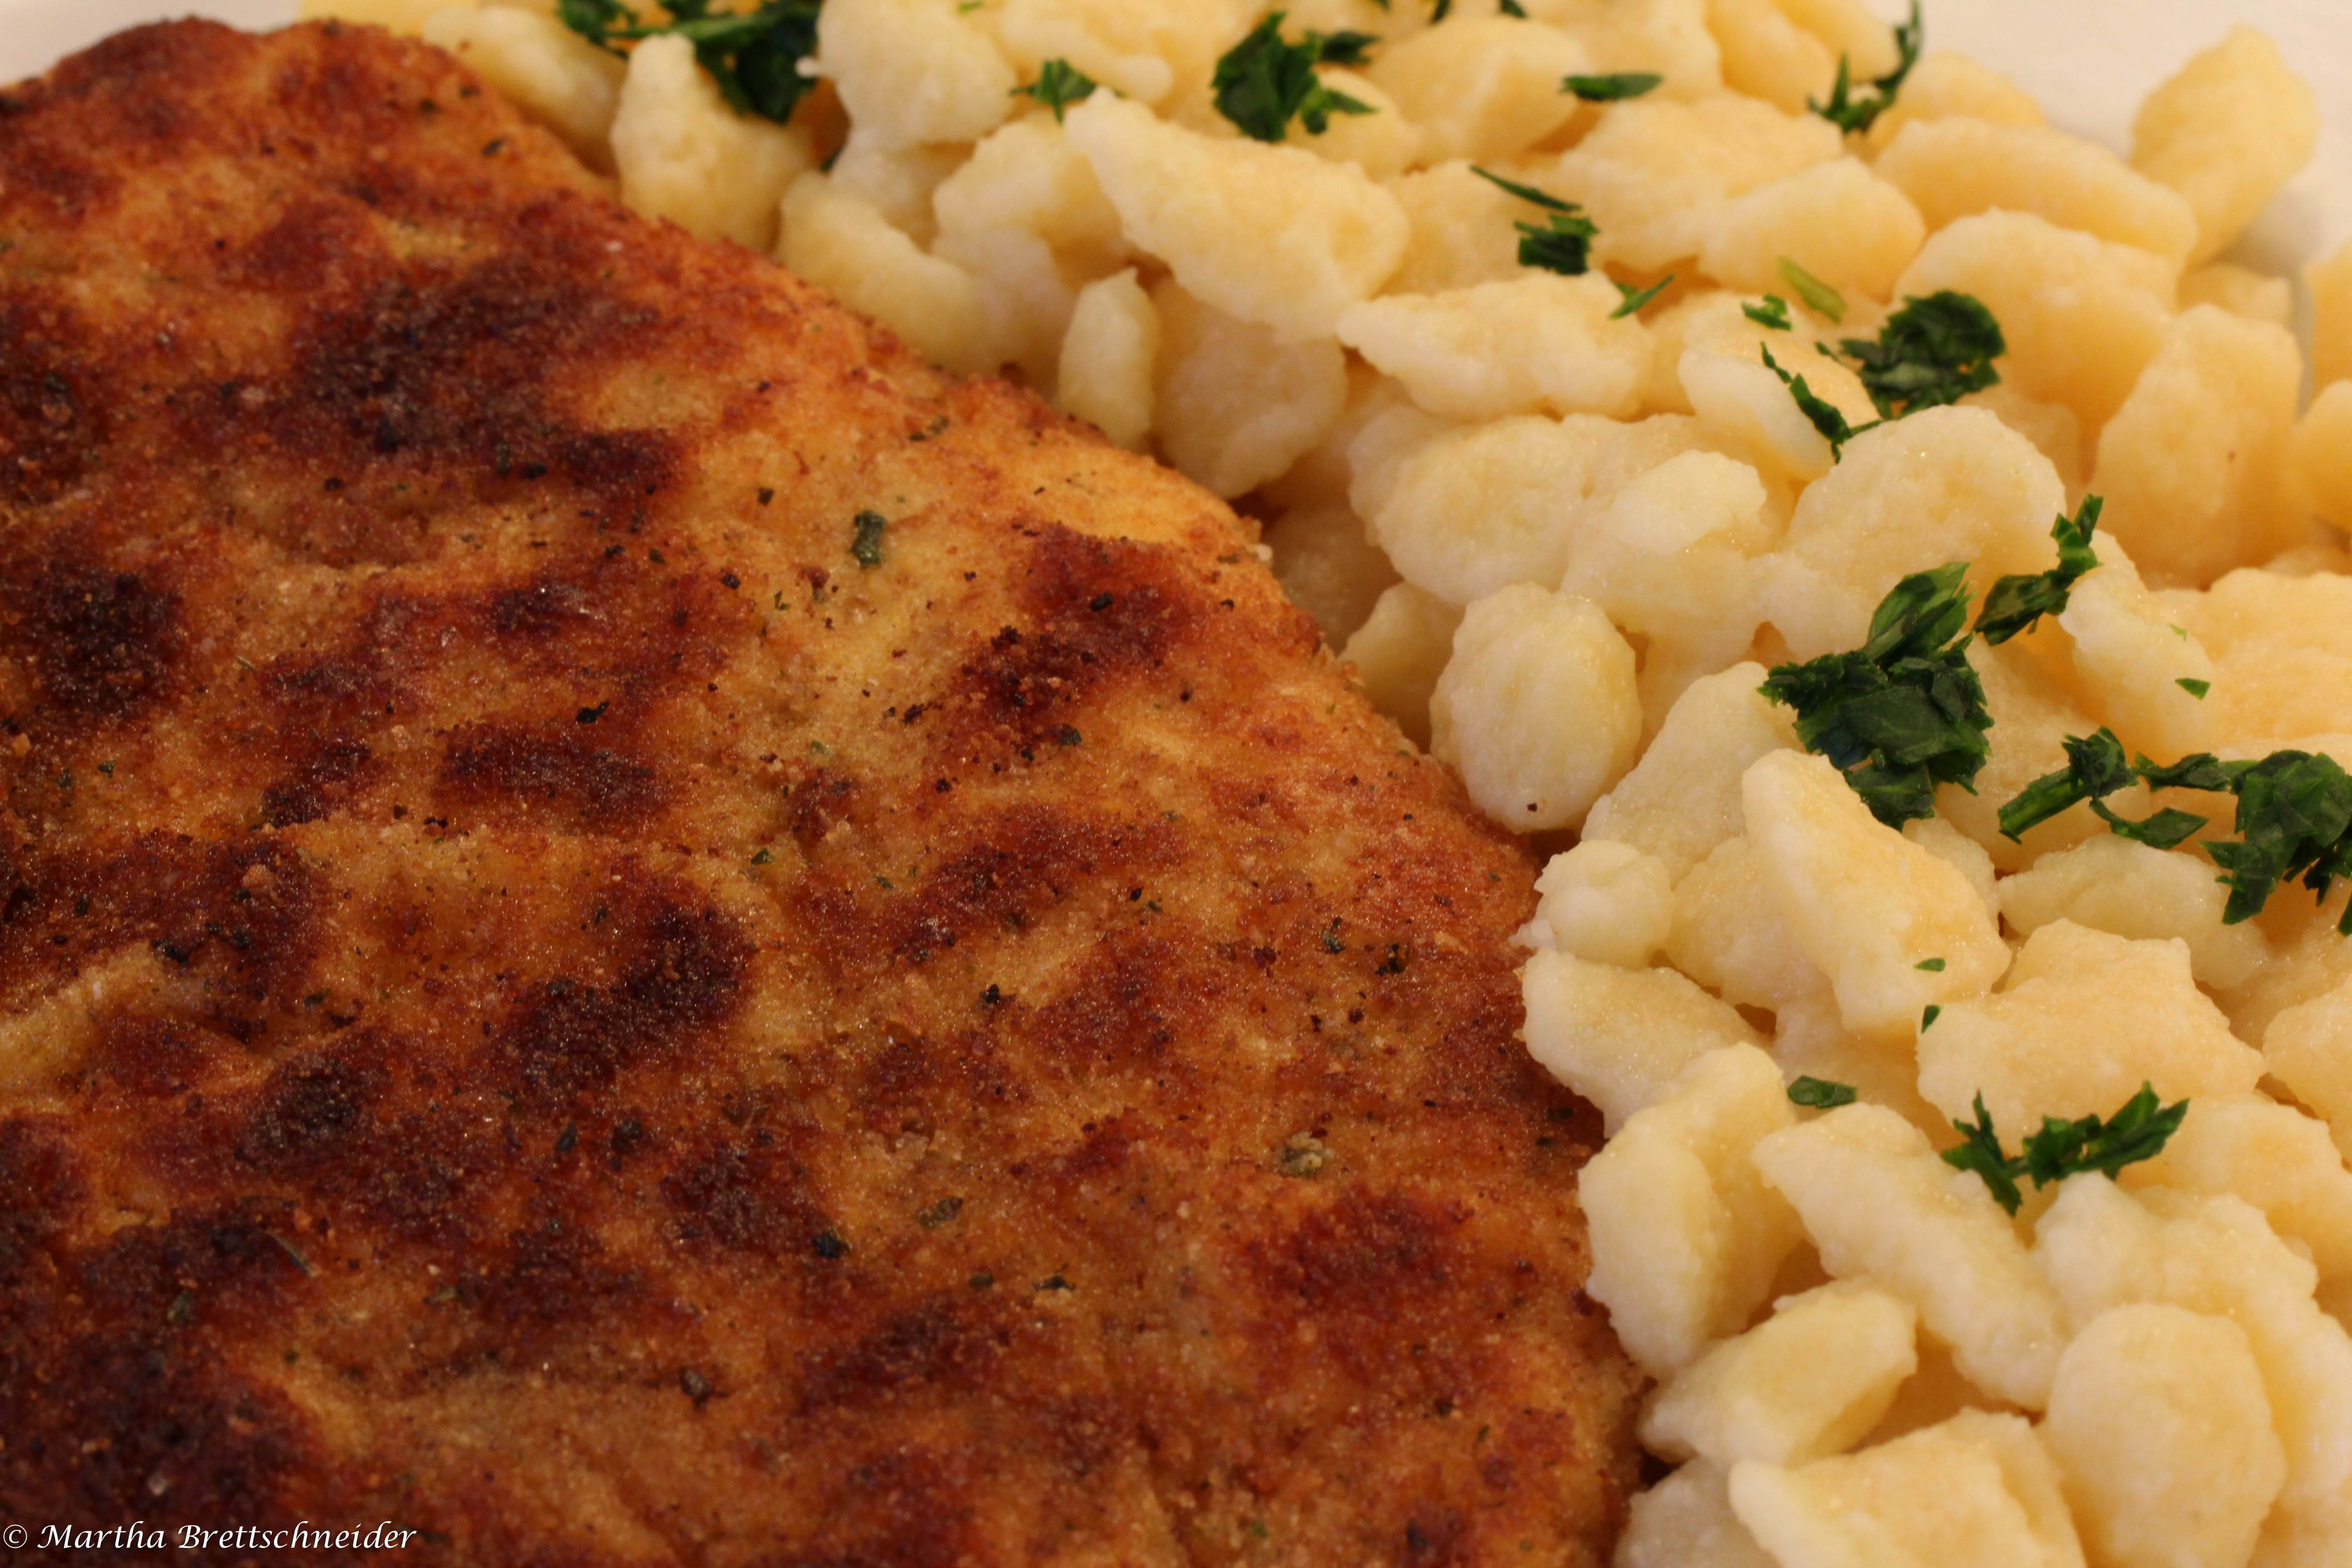 schnitzel with noodles